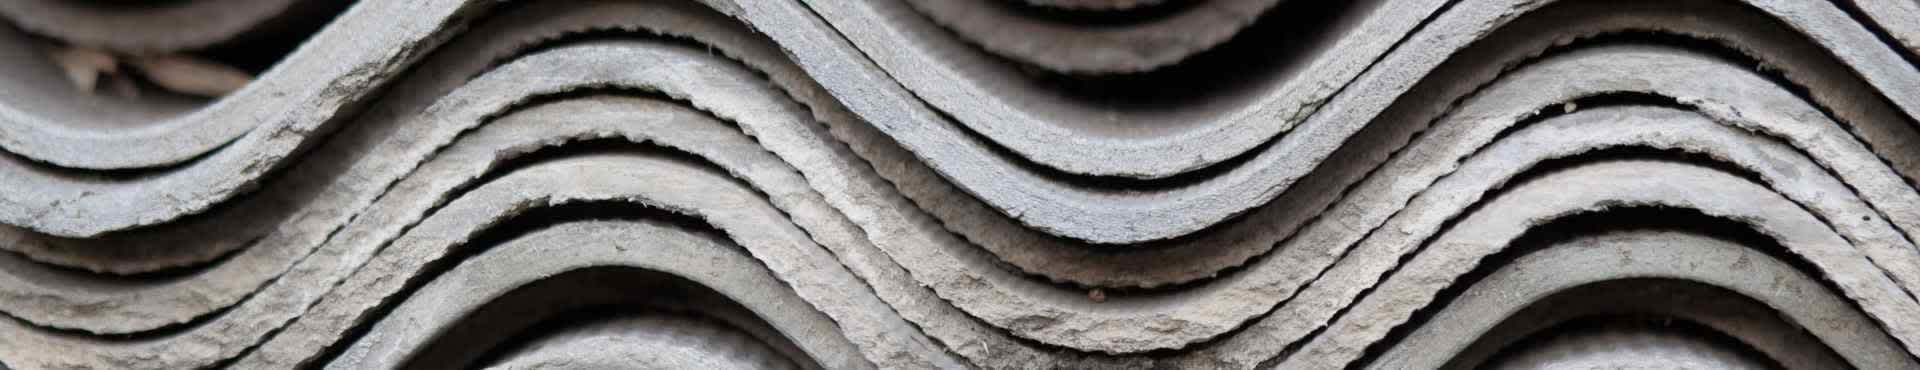 Shine Lawyers | Asbestos sheets | Shine Lawyers